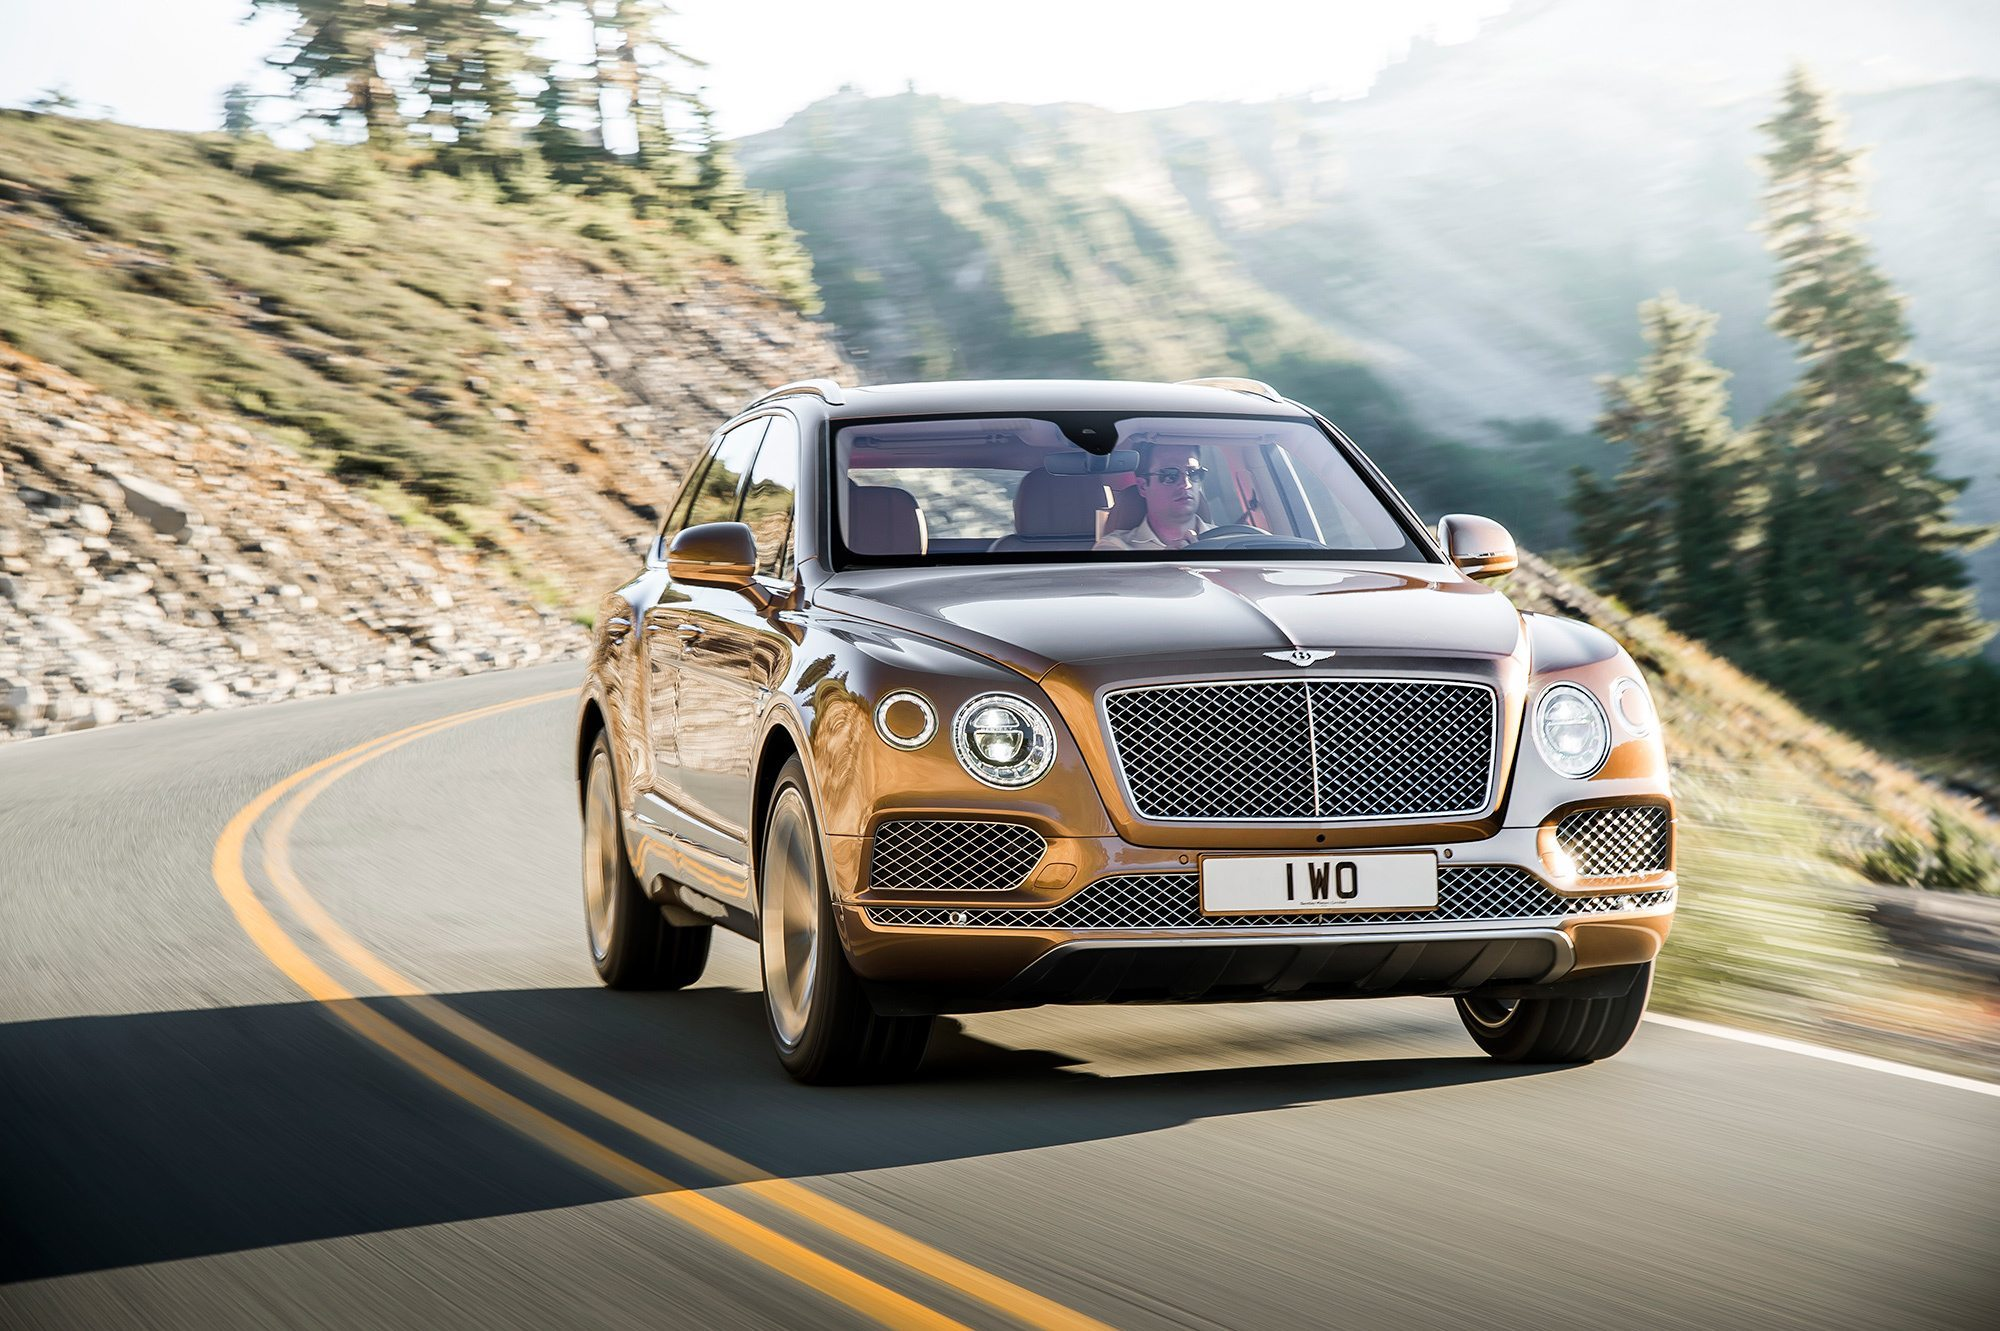 Bentley Bentayga W12 – Sports cars or luxury SUV?